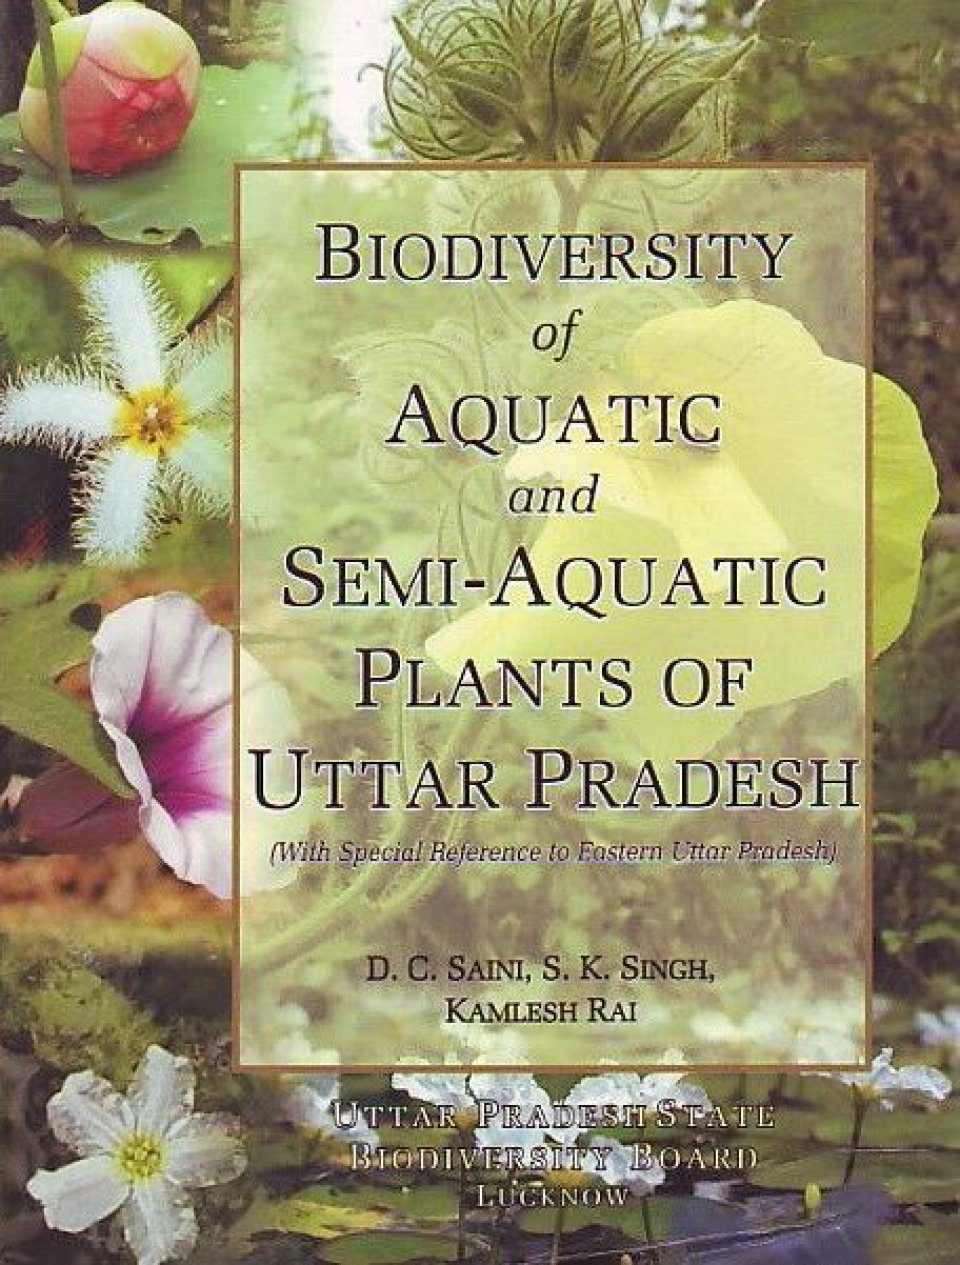 Biodiversity of Aquatic and Semi-Aquatic Plants of Uttar Pradesh